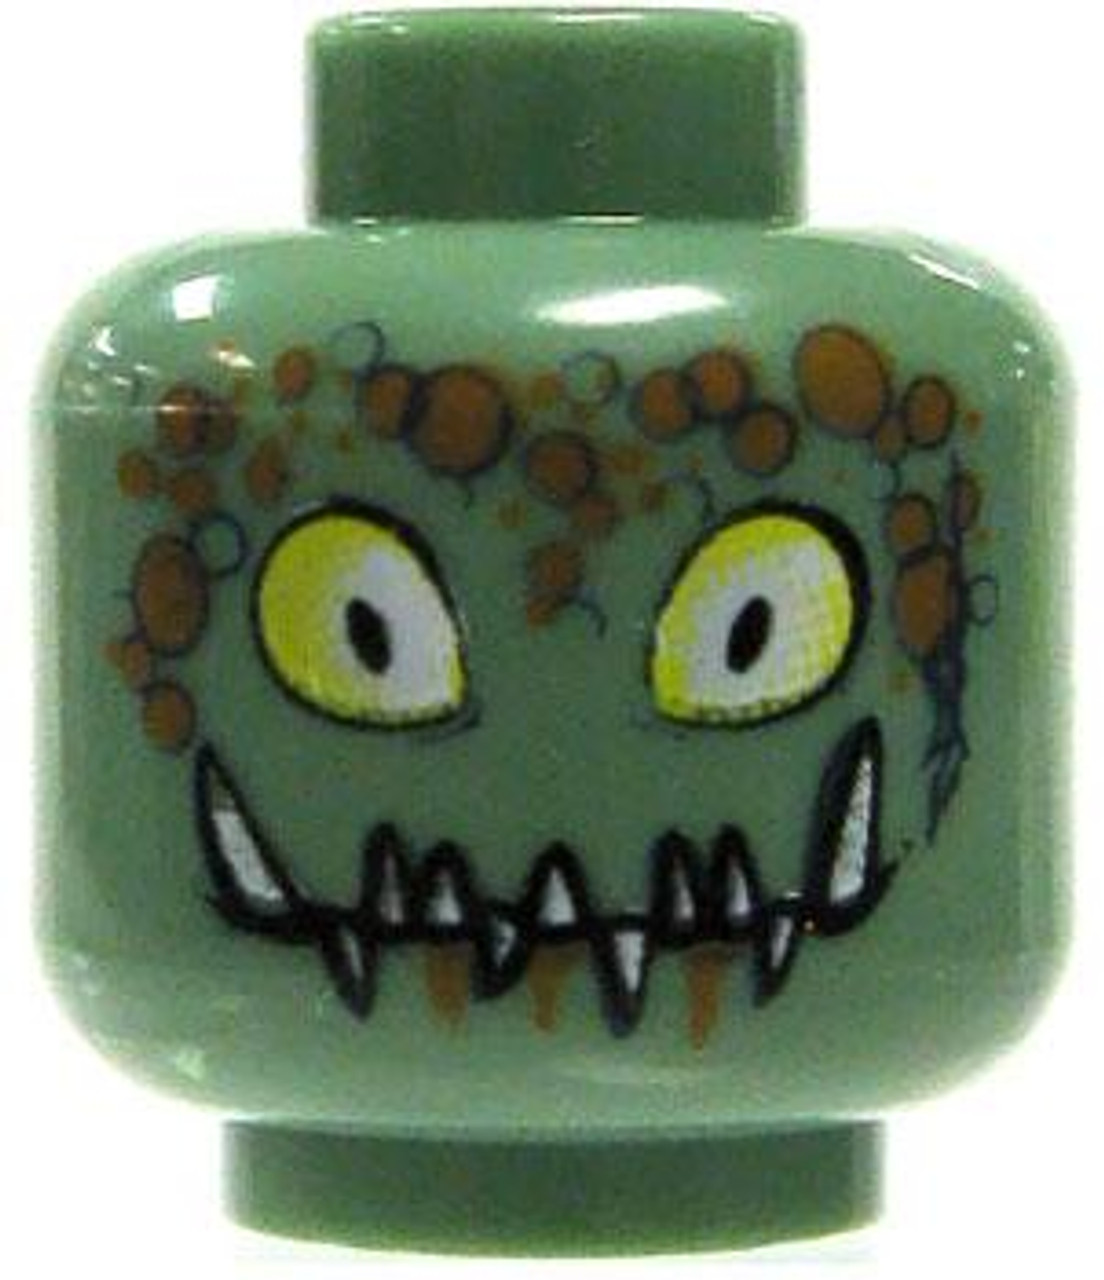 LEGO Minifigure Parts Sand Green with Yellow Eyes & Jagged Fangs Minifigure Head [Loose]